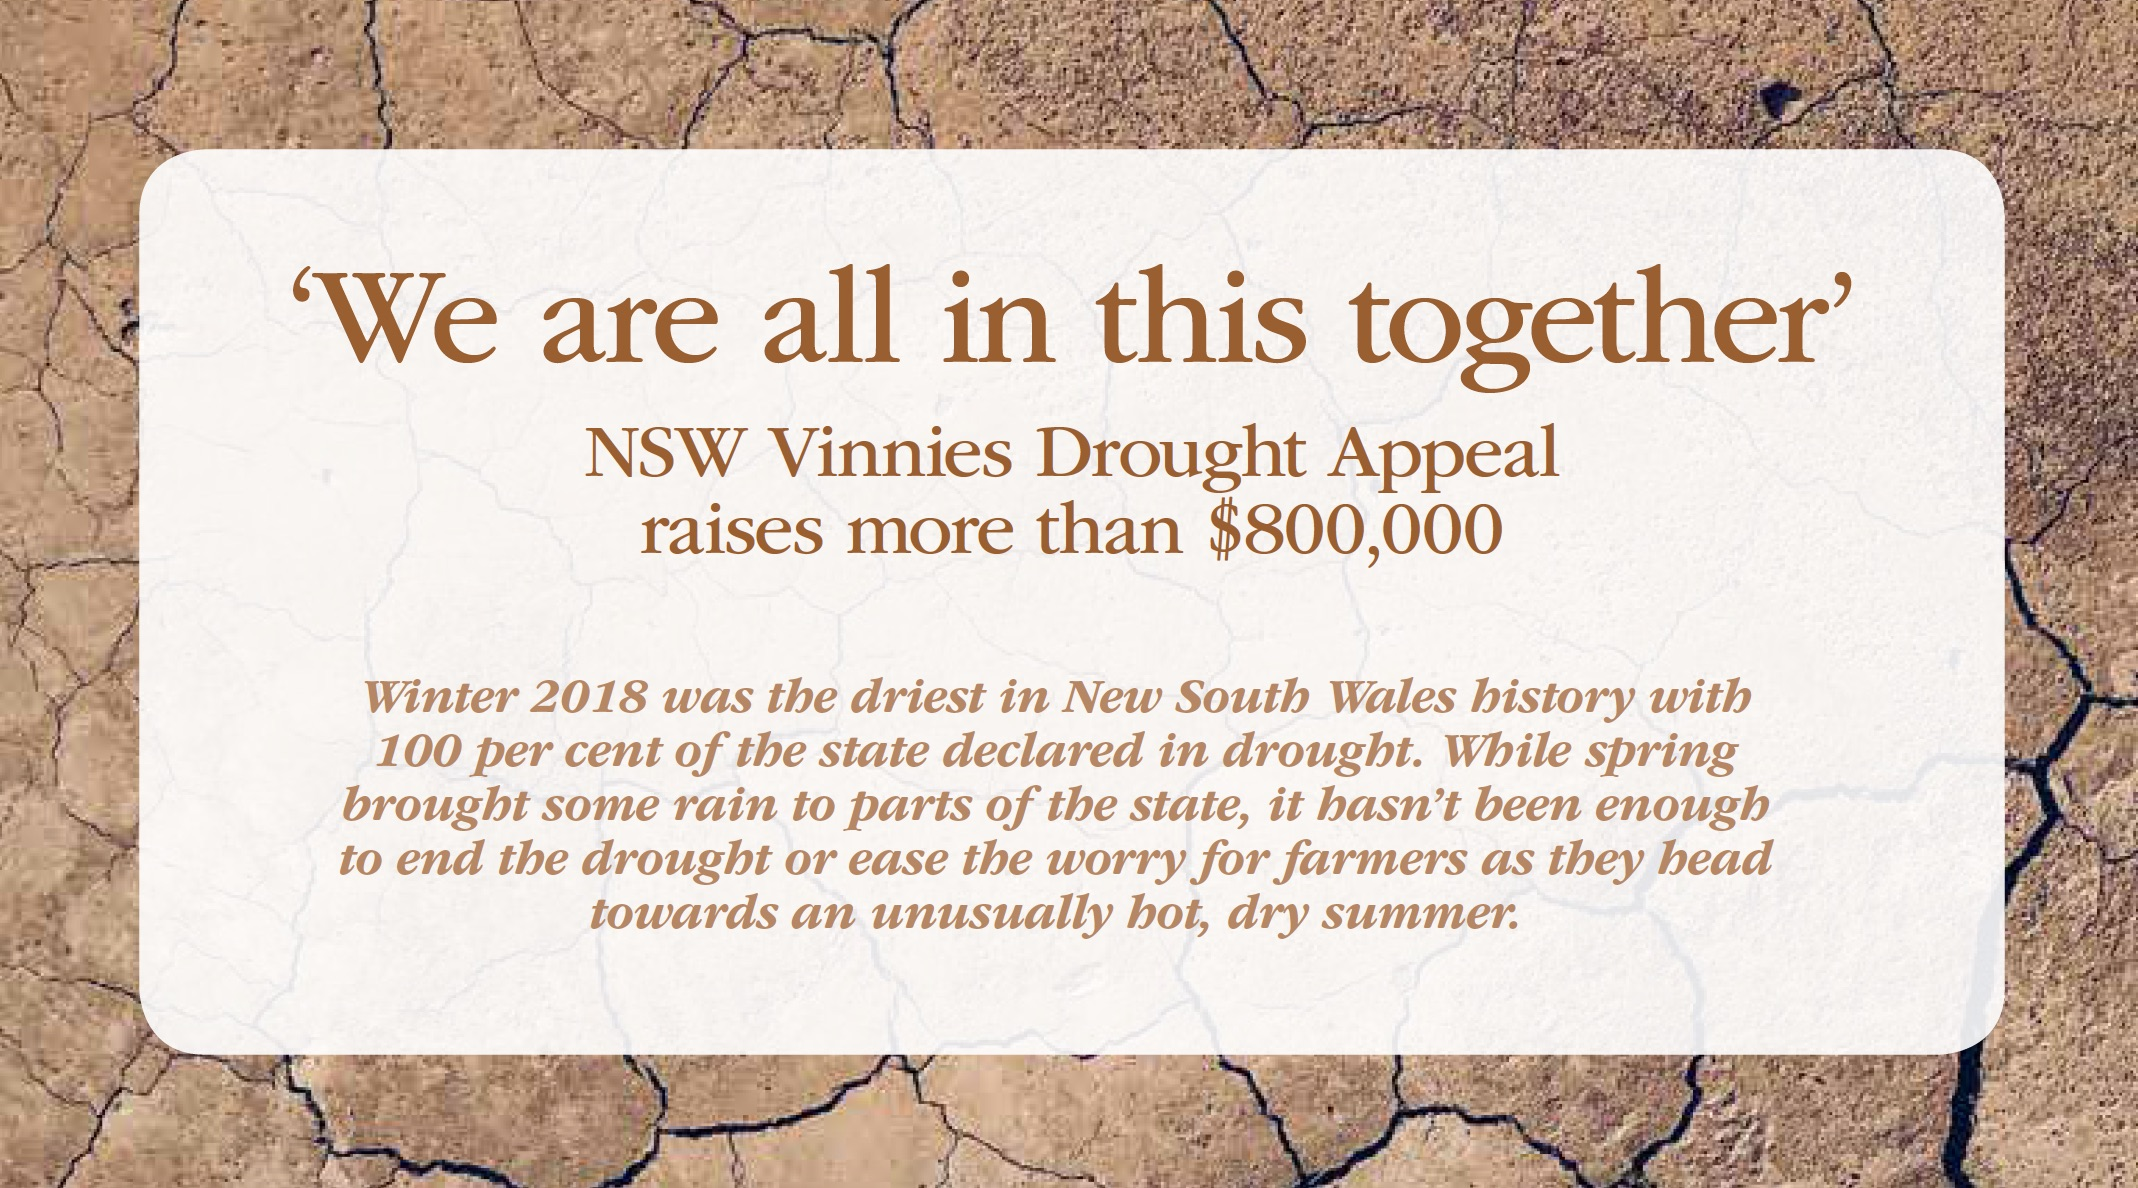 We are all in this together. NSW Vinnies Drought Appeal raises more that $300,000.